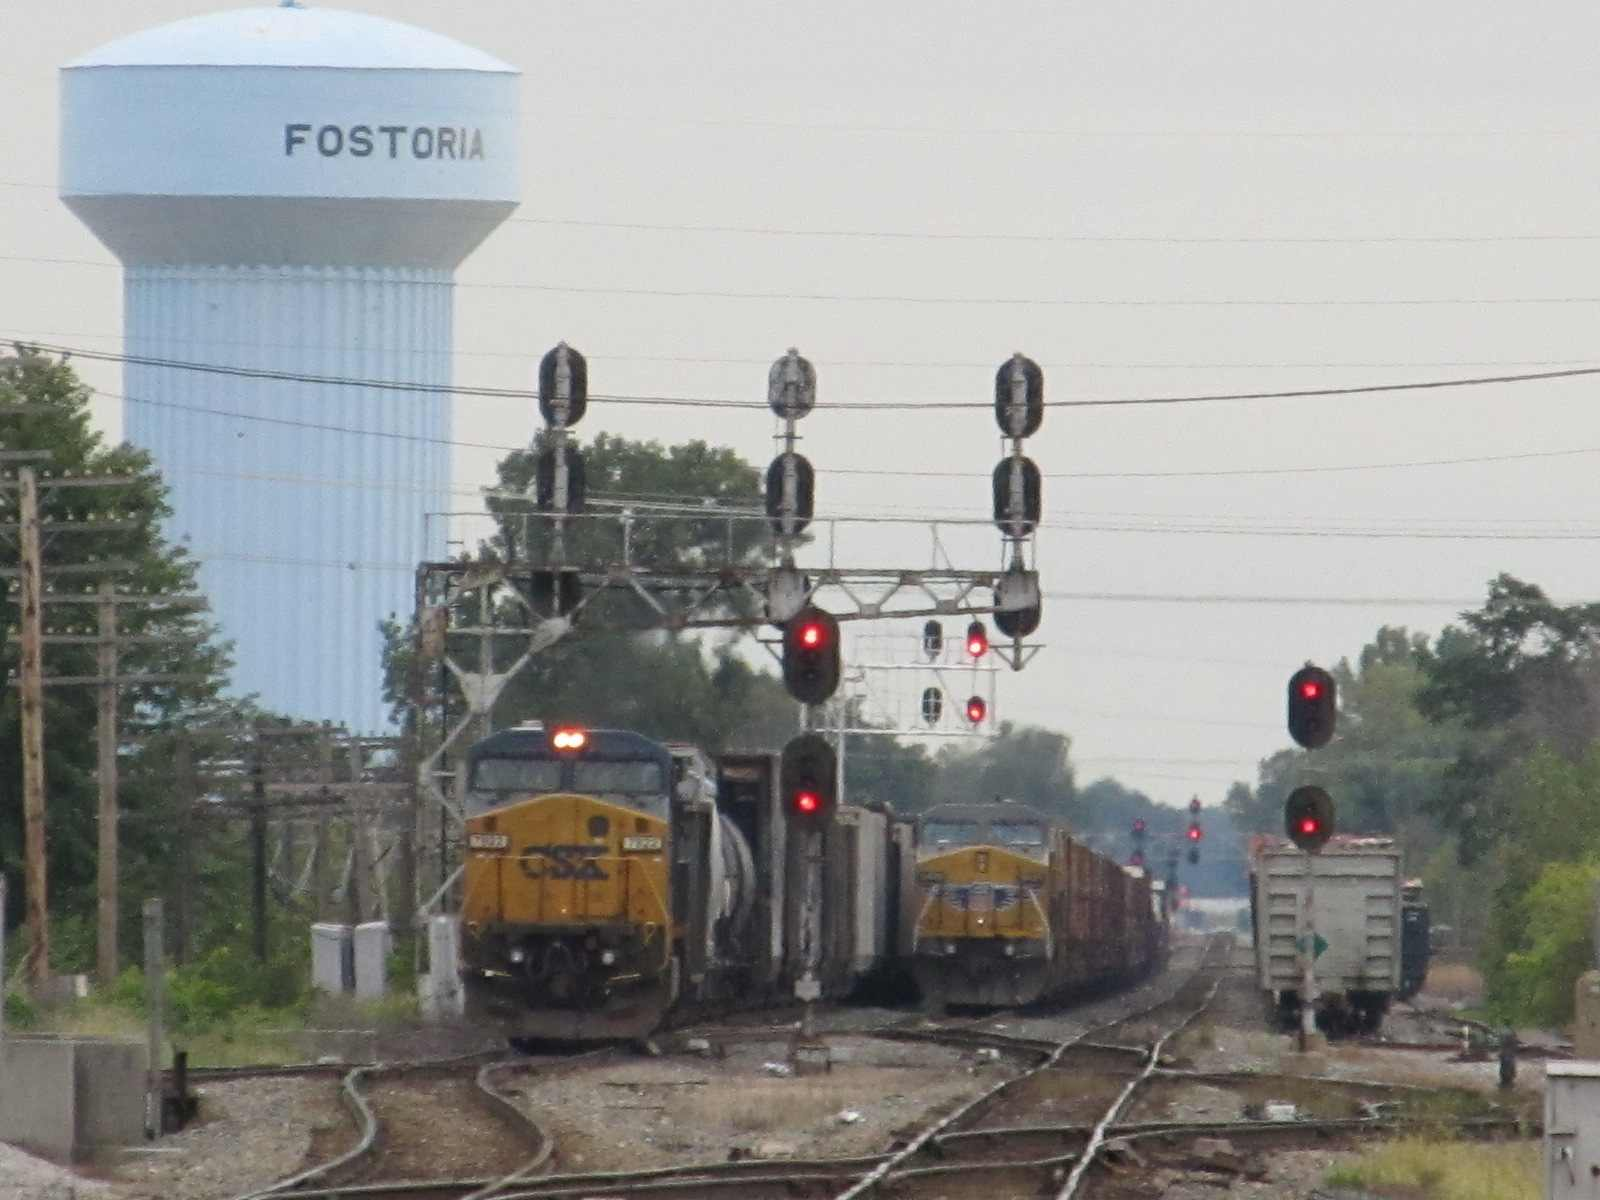 Fostoria (OH) United States  city pictures gallery : Fostoria OH Railfan Guide